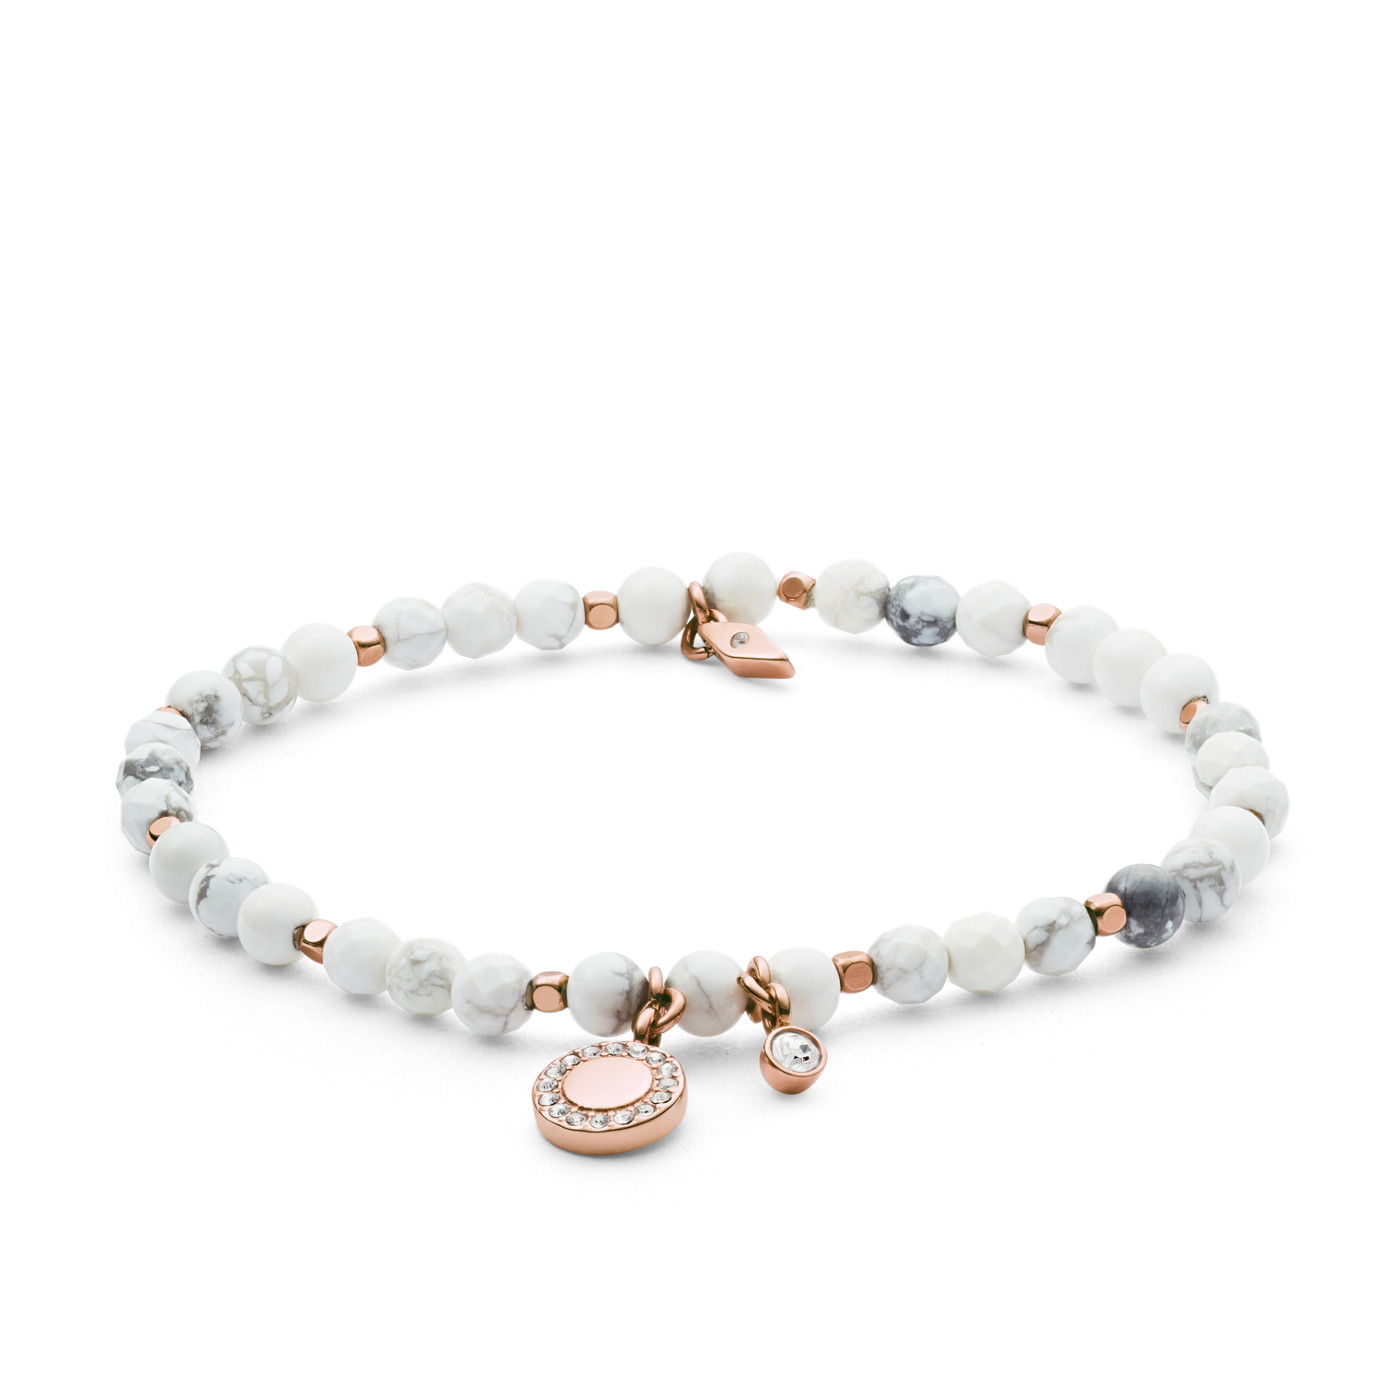 Wellness White Semi-Precious Bracelet